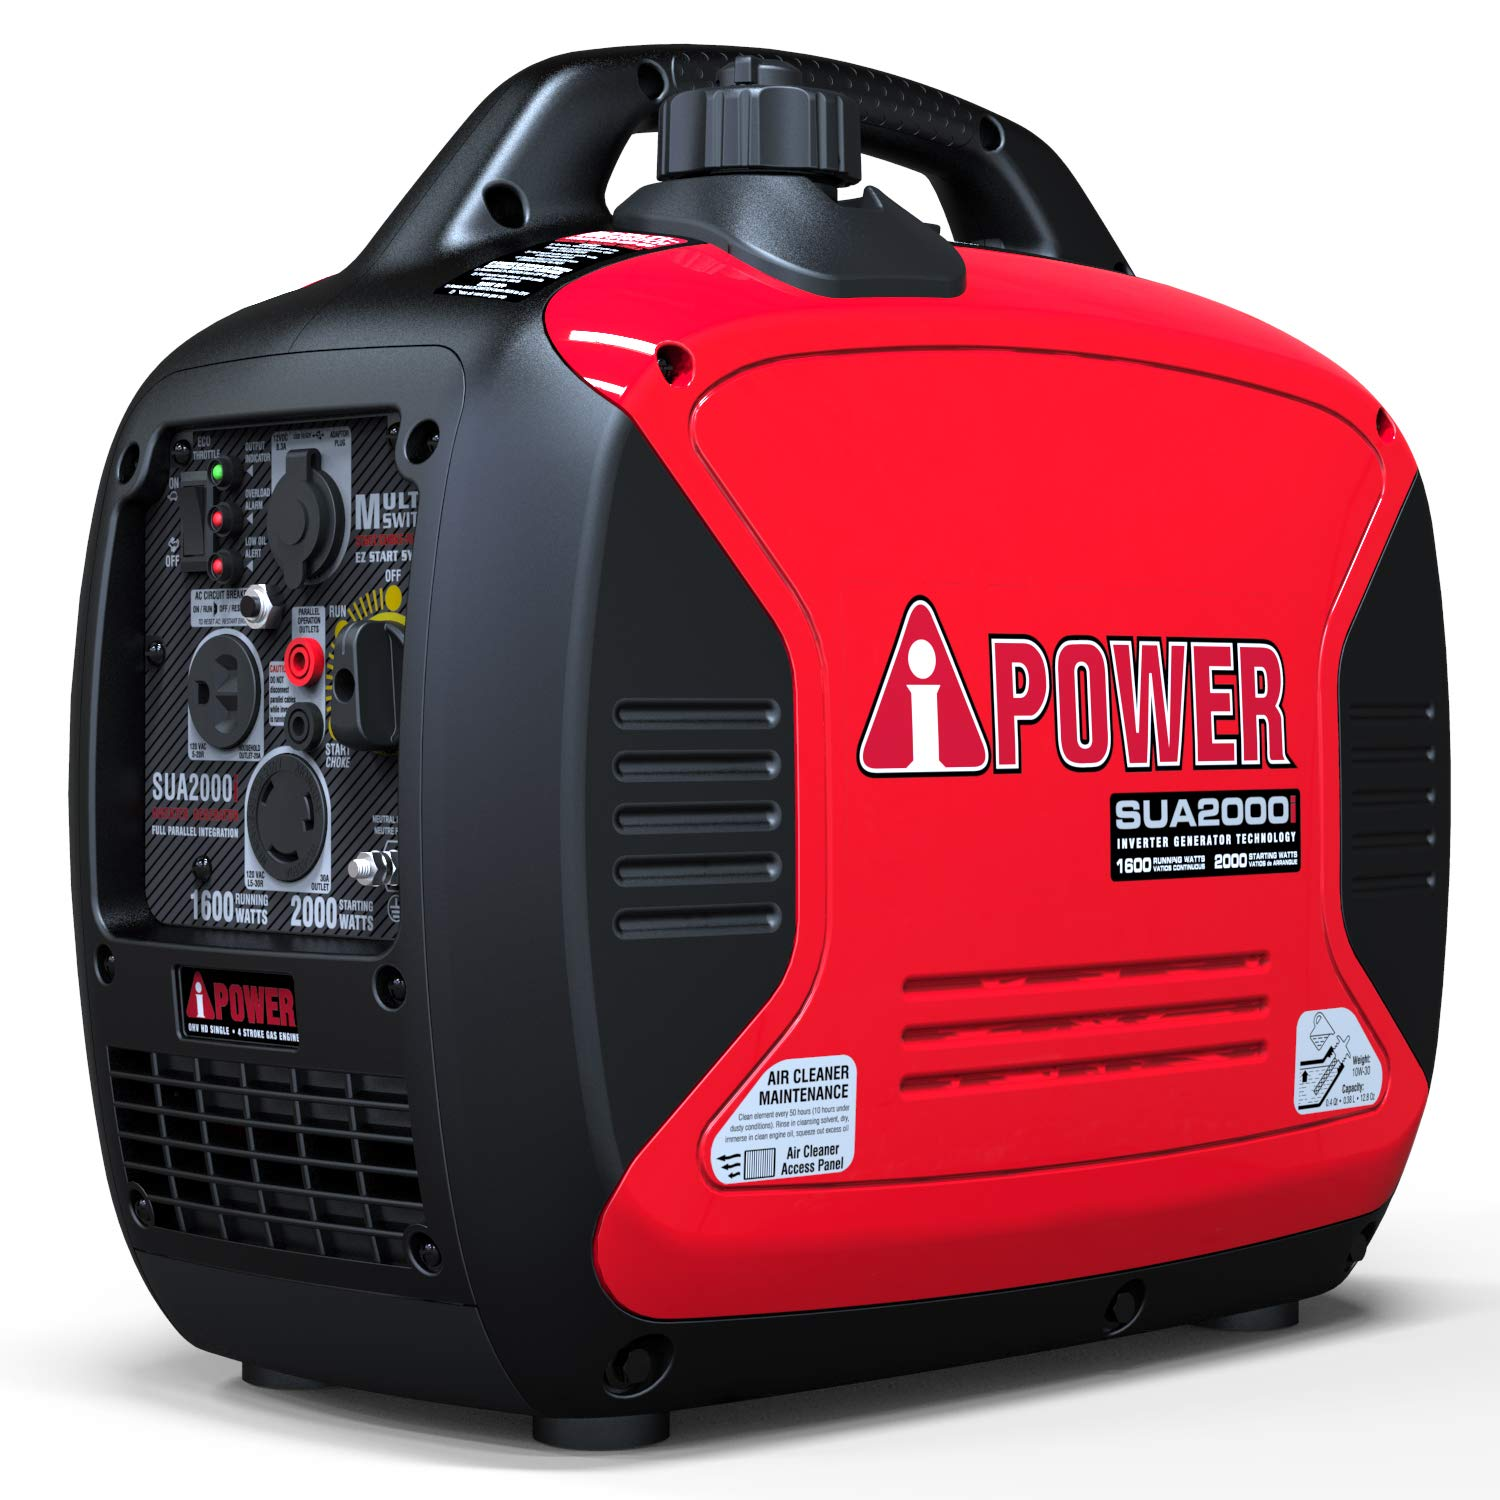 A-ipower Generator Reviews In 2021 - Top 3 Picks! 3